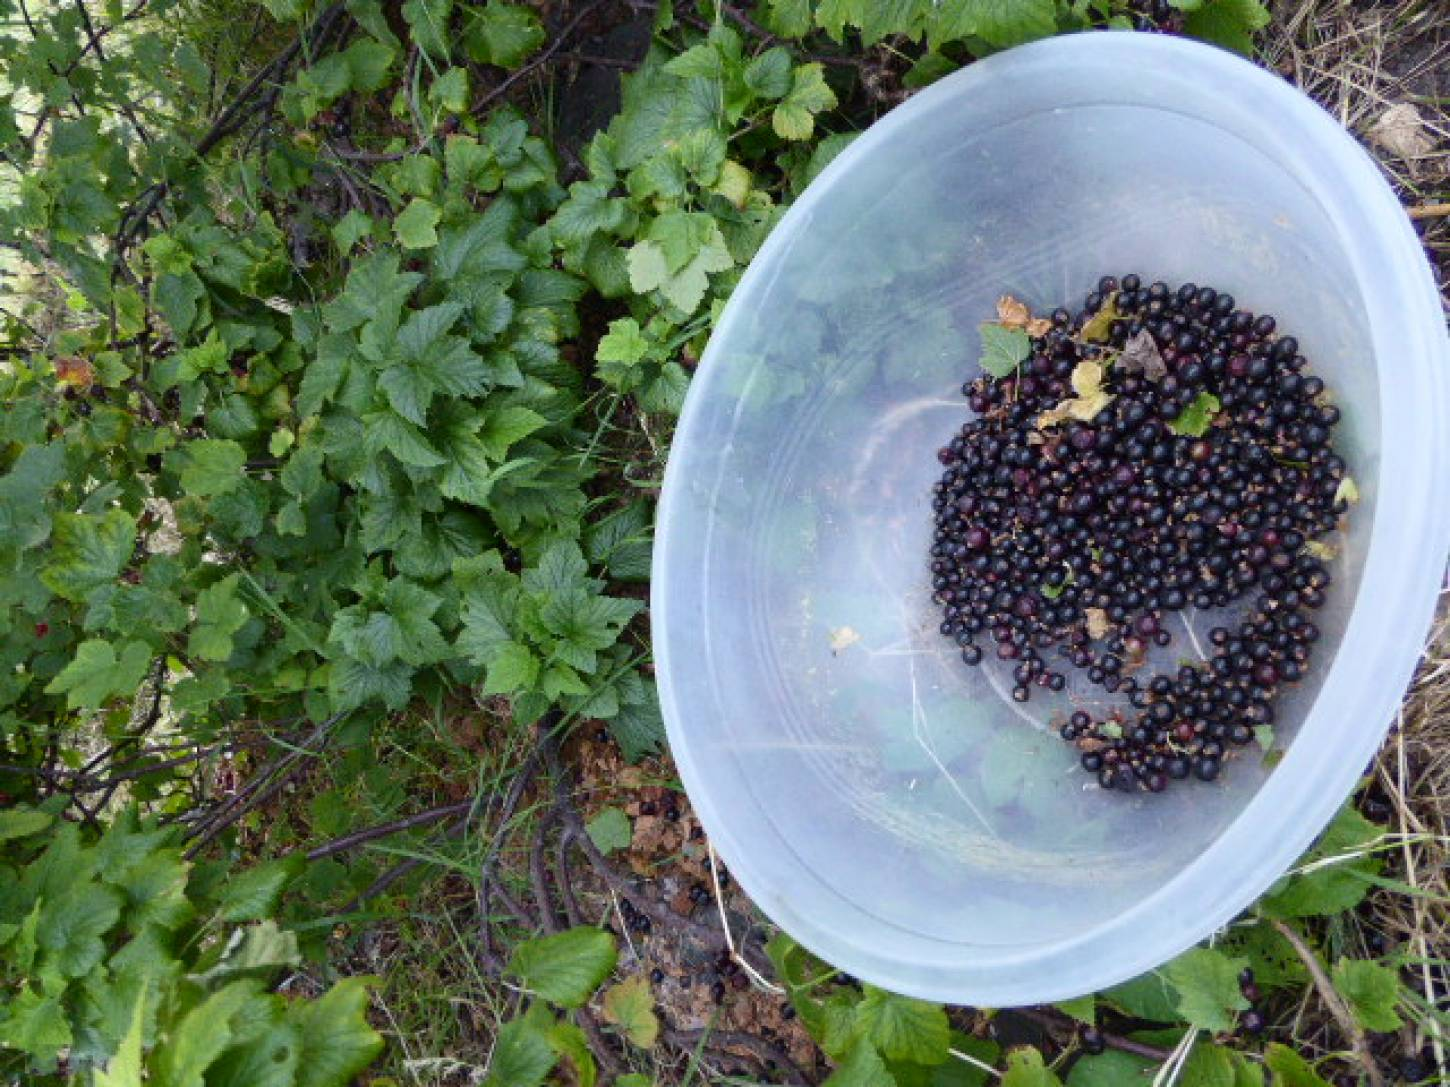 black currant harvest 2017 - 8:48pm&nbsp;3<sup>rd</sup>&nbsp;Jul.&nbsp;'17  <a href='http://maps.google.com/?t=h&q=51.444147,-0.101314&z=18&output=embed' target=_blank><img src='http://www.brockwell-bake.org.uk/img/marker.png' style='border:none;vertical-align:top' height=16px></a>